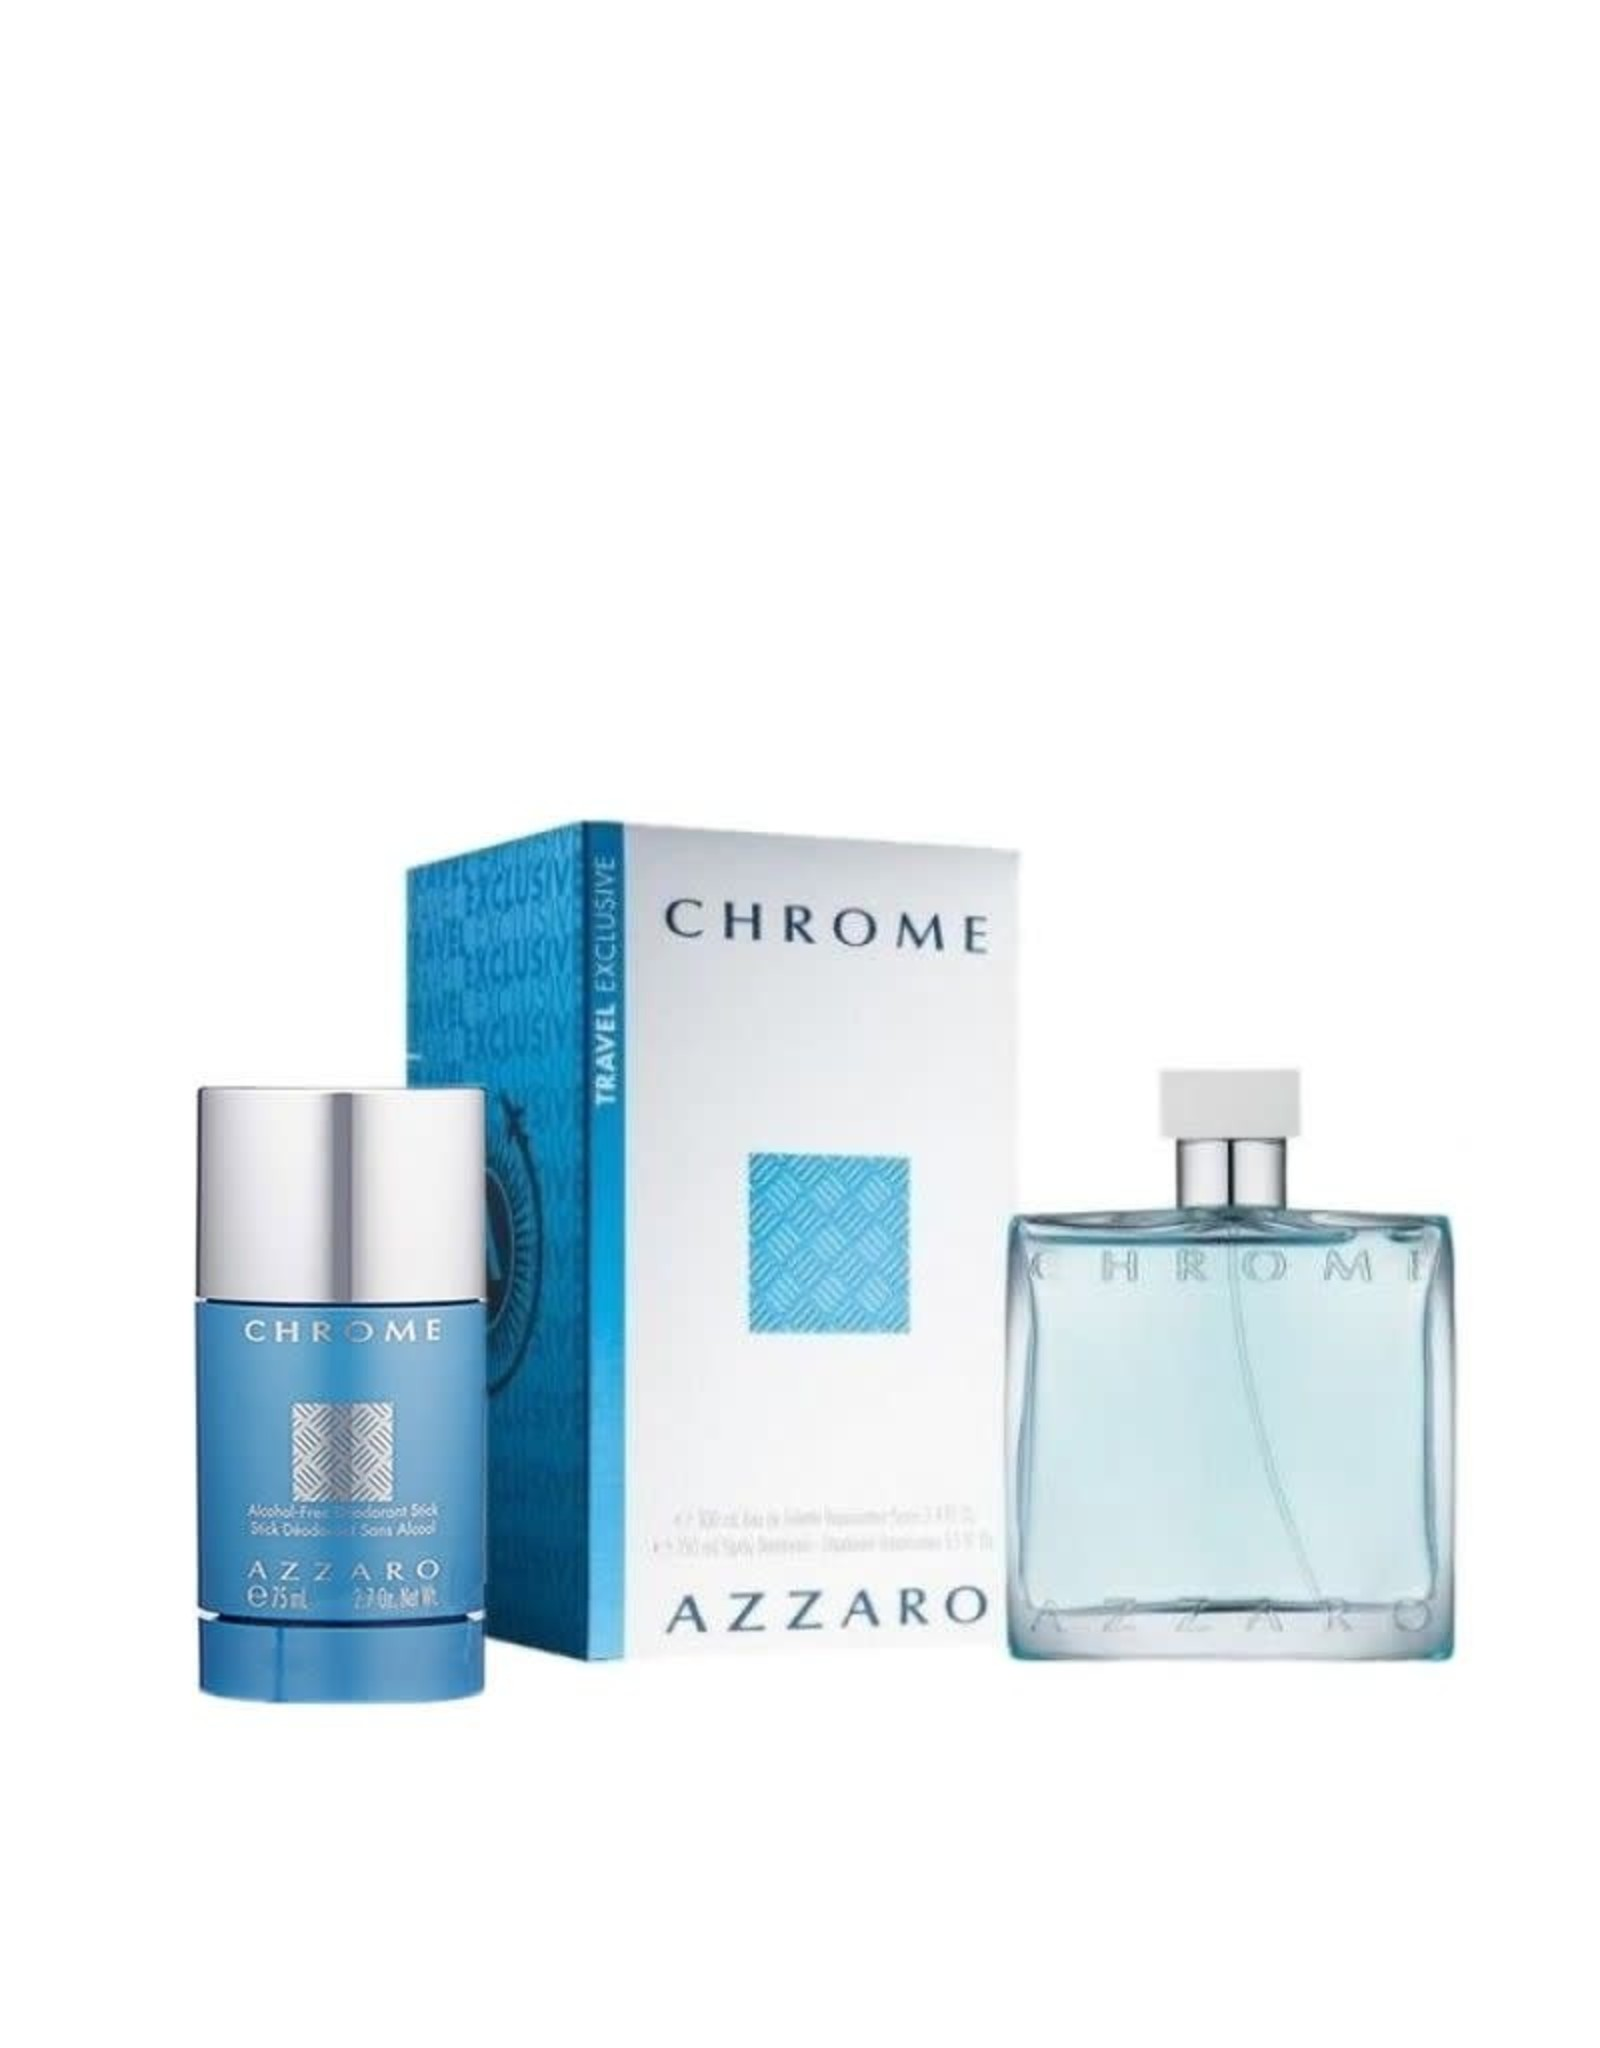 AZZARO AZZARO CHROME 2pcs Set 75ML alcohol free DEO Stick